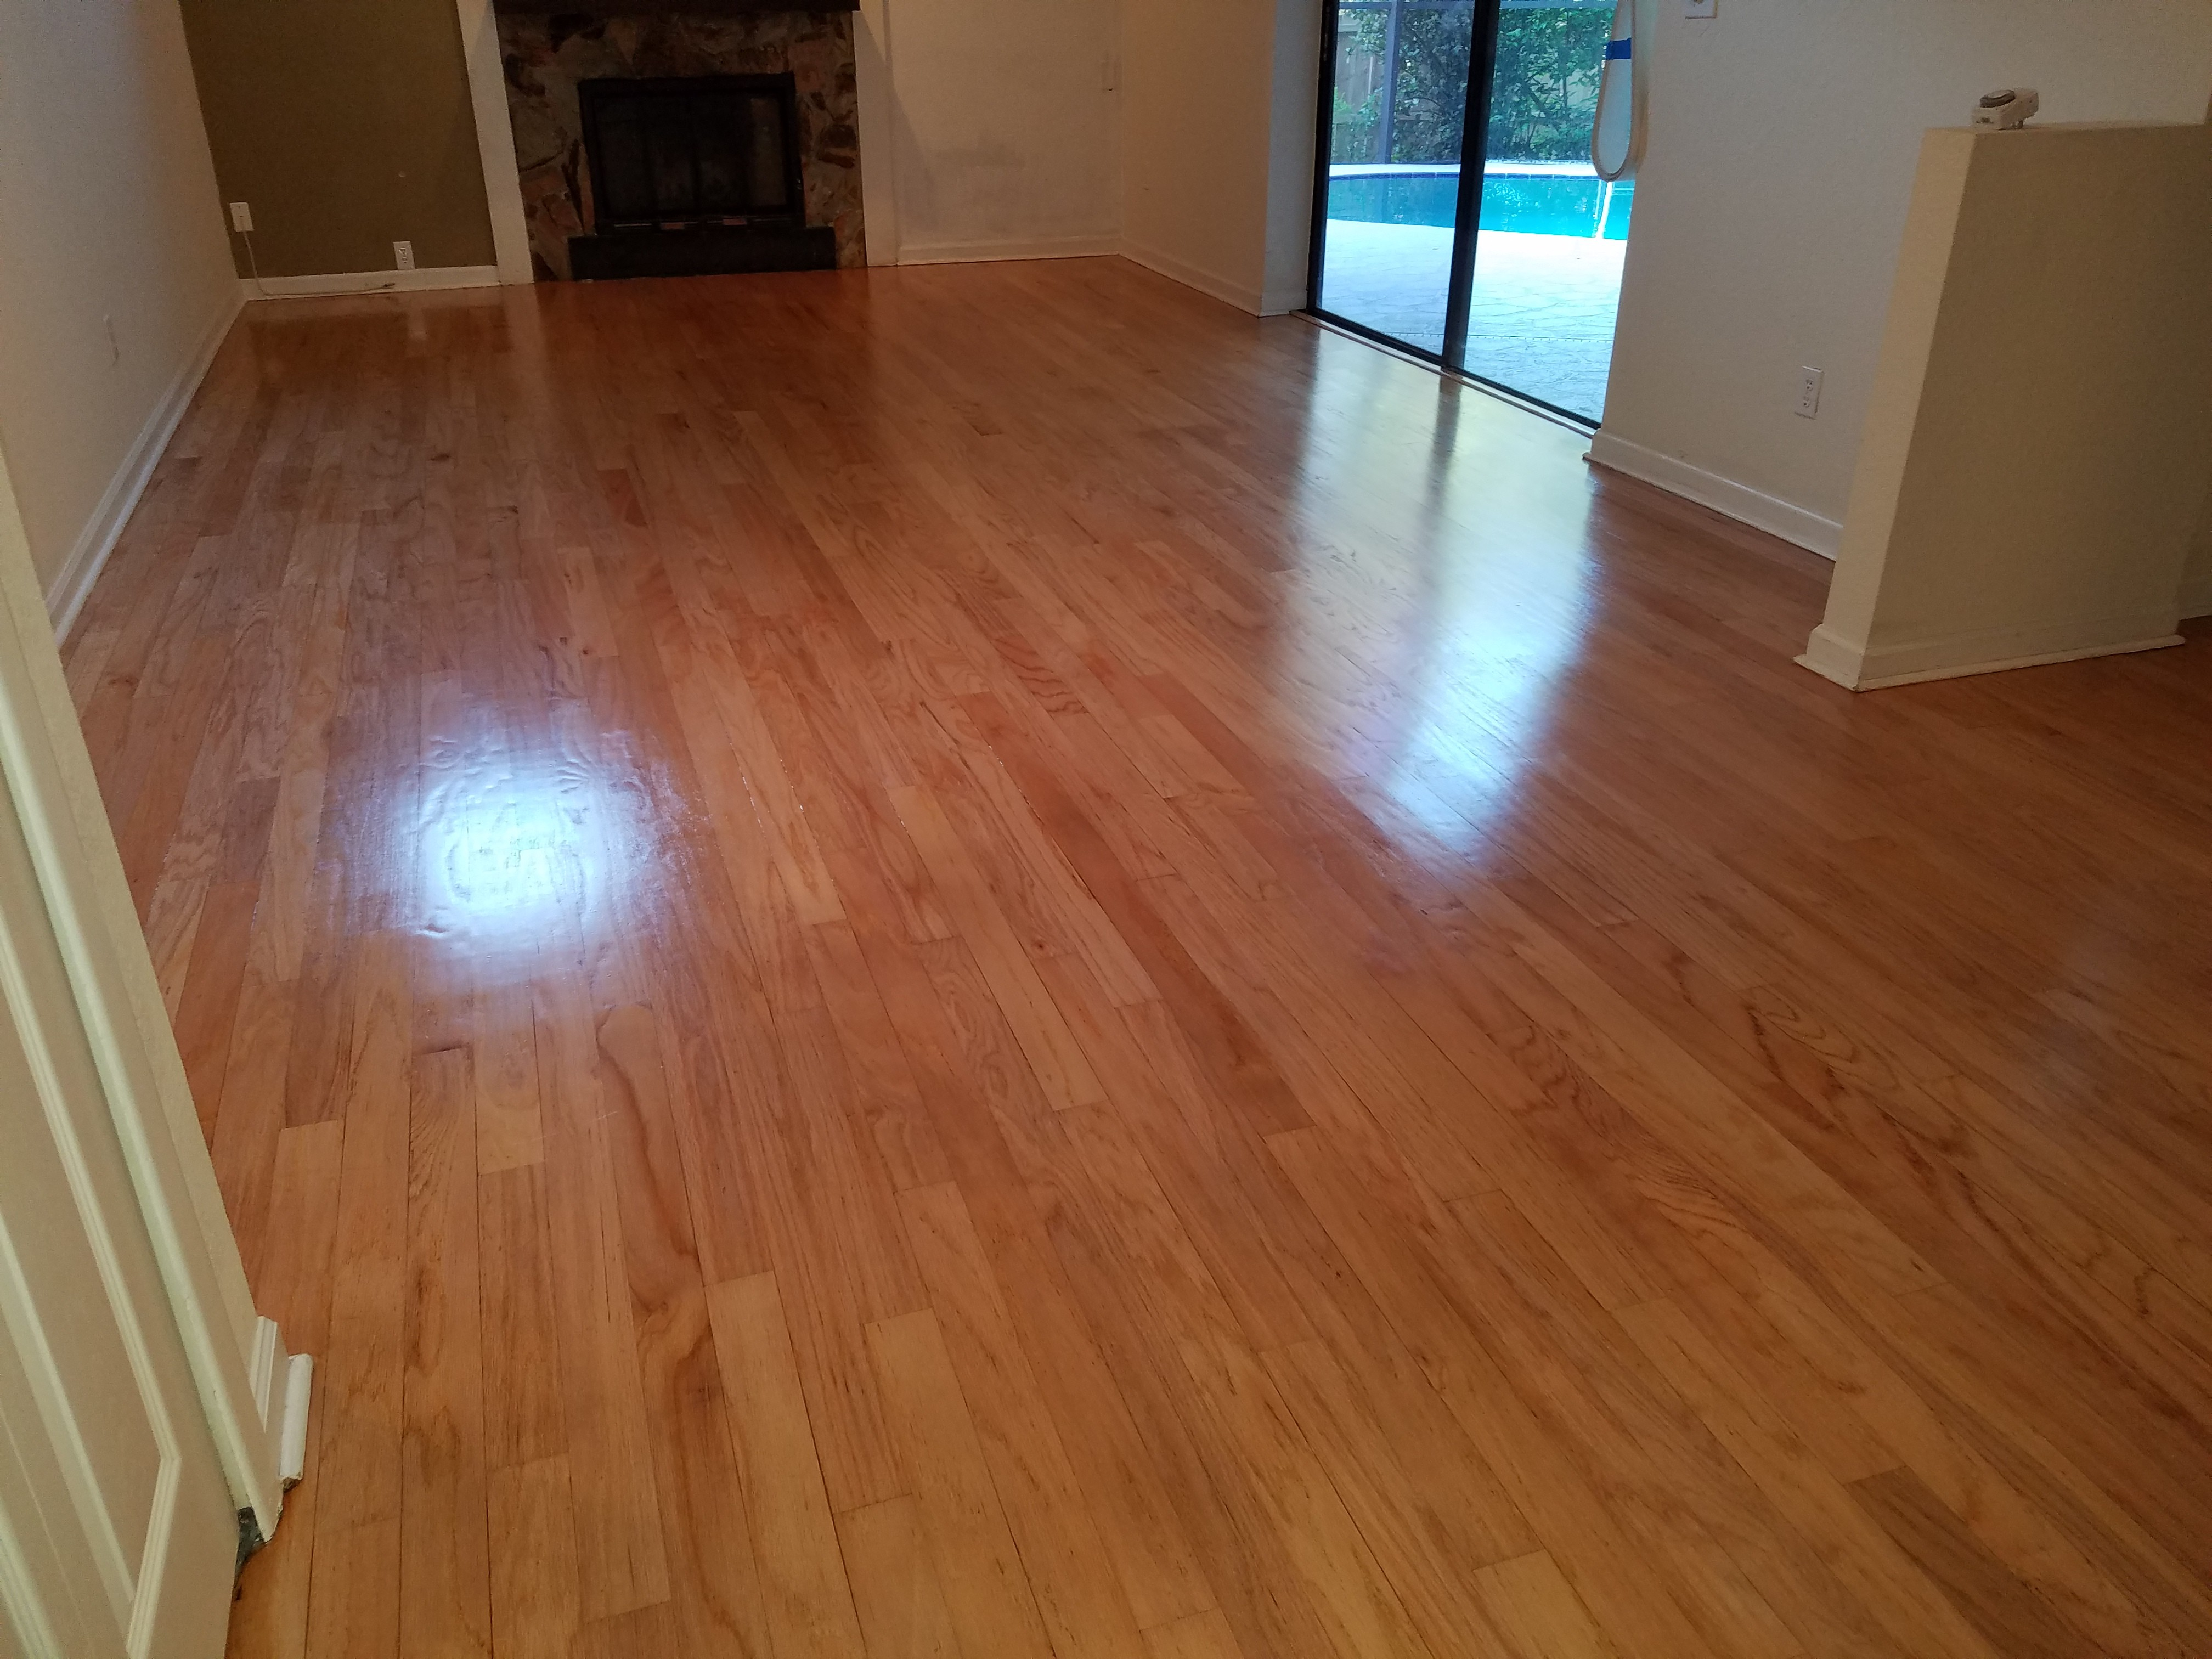 Georges Newly Refinished Floor  BM Hardwood Floors